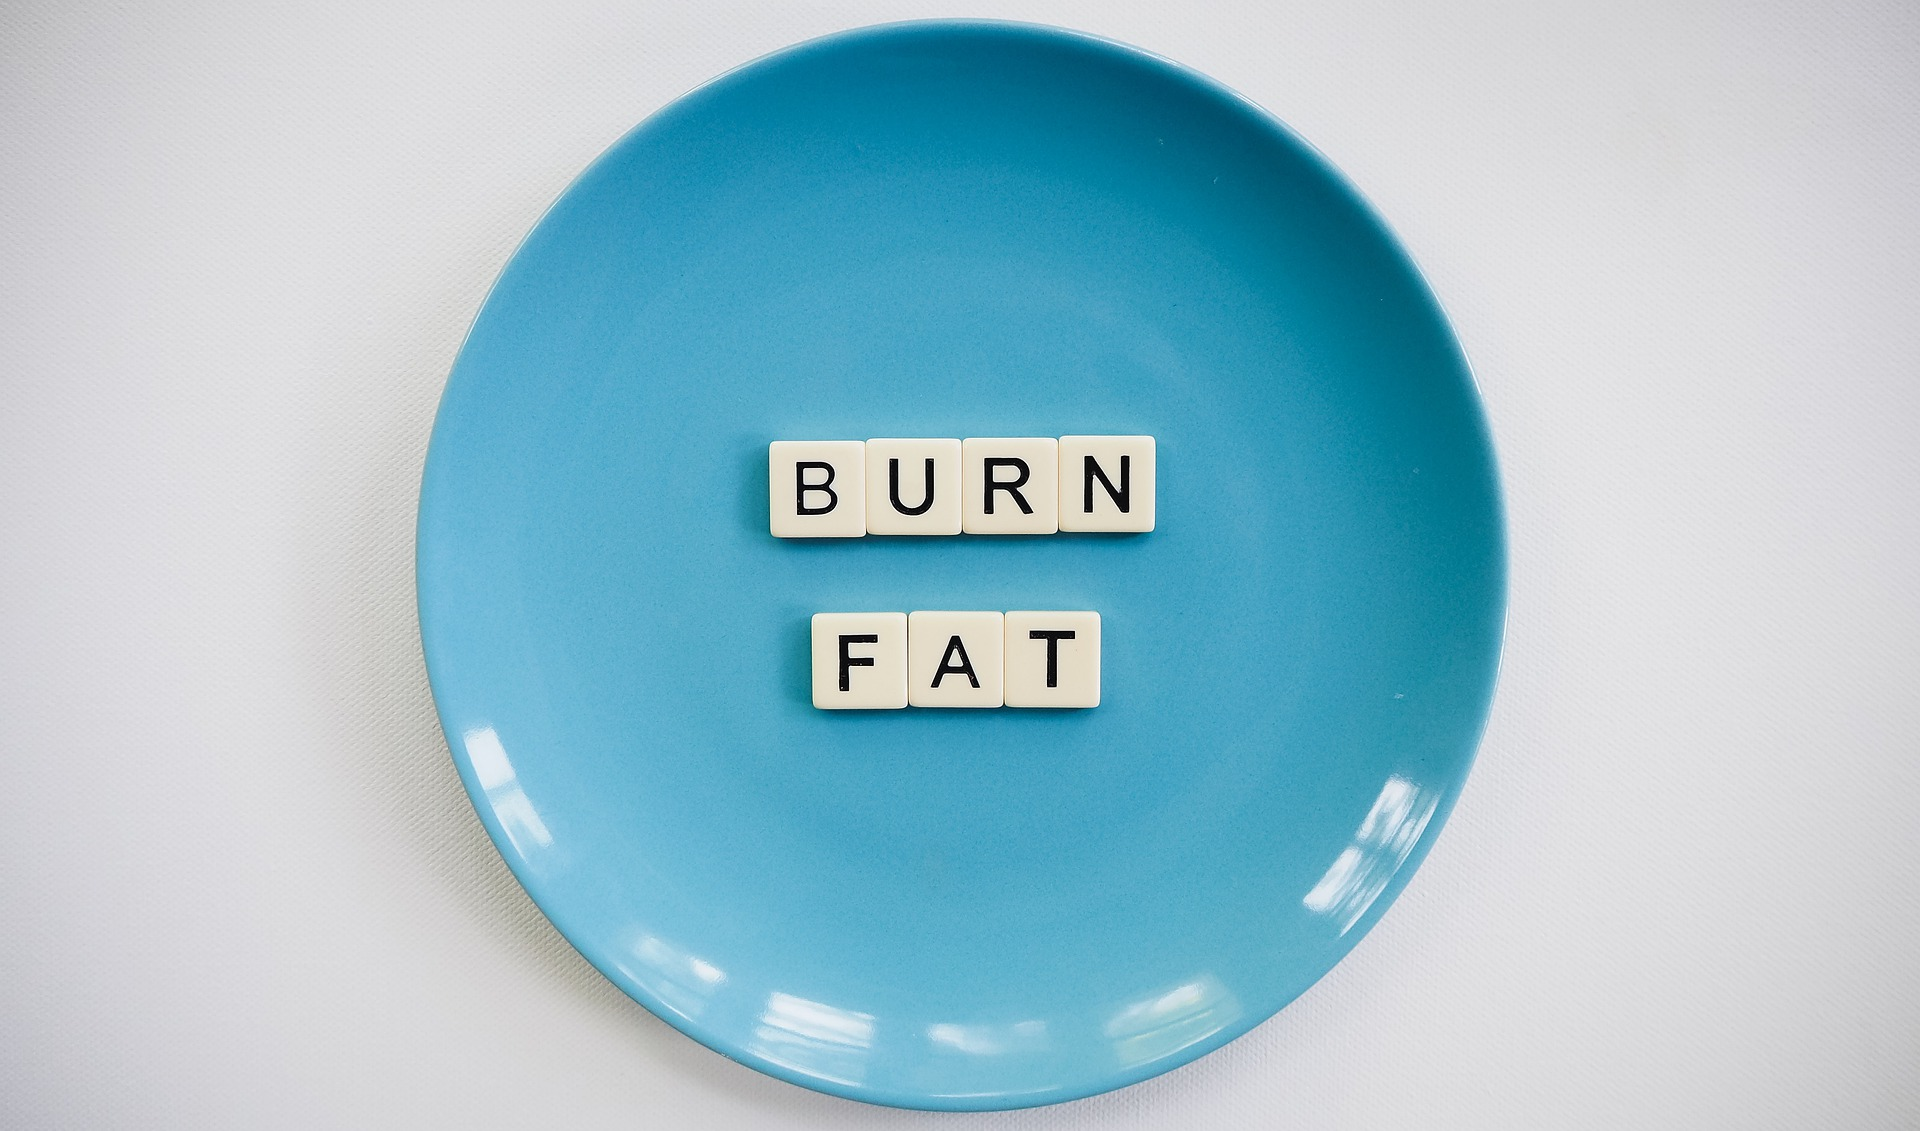 Burn fat lettering on a plate